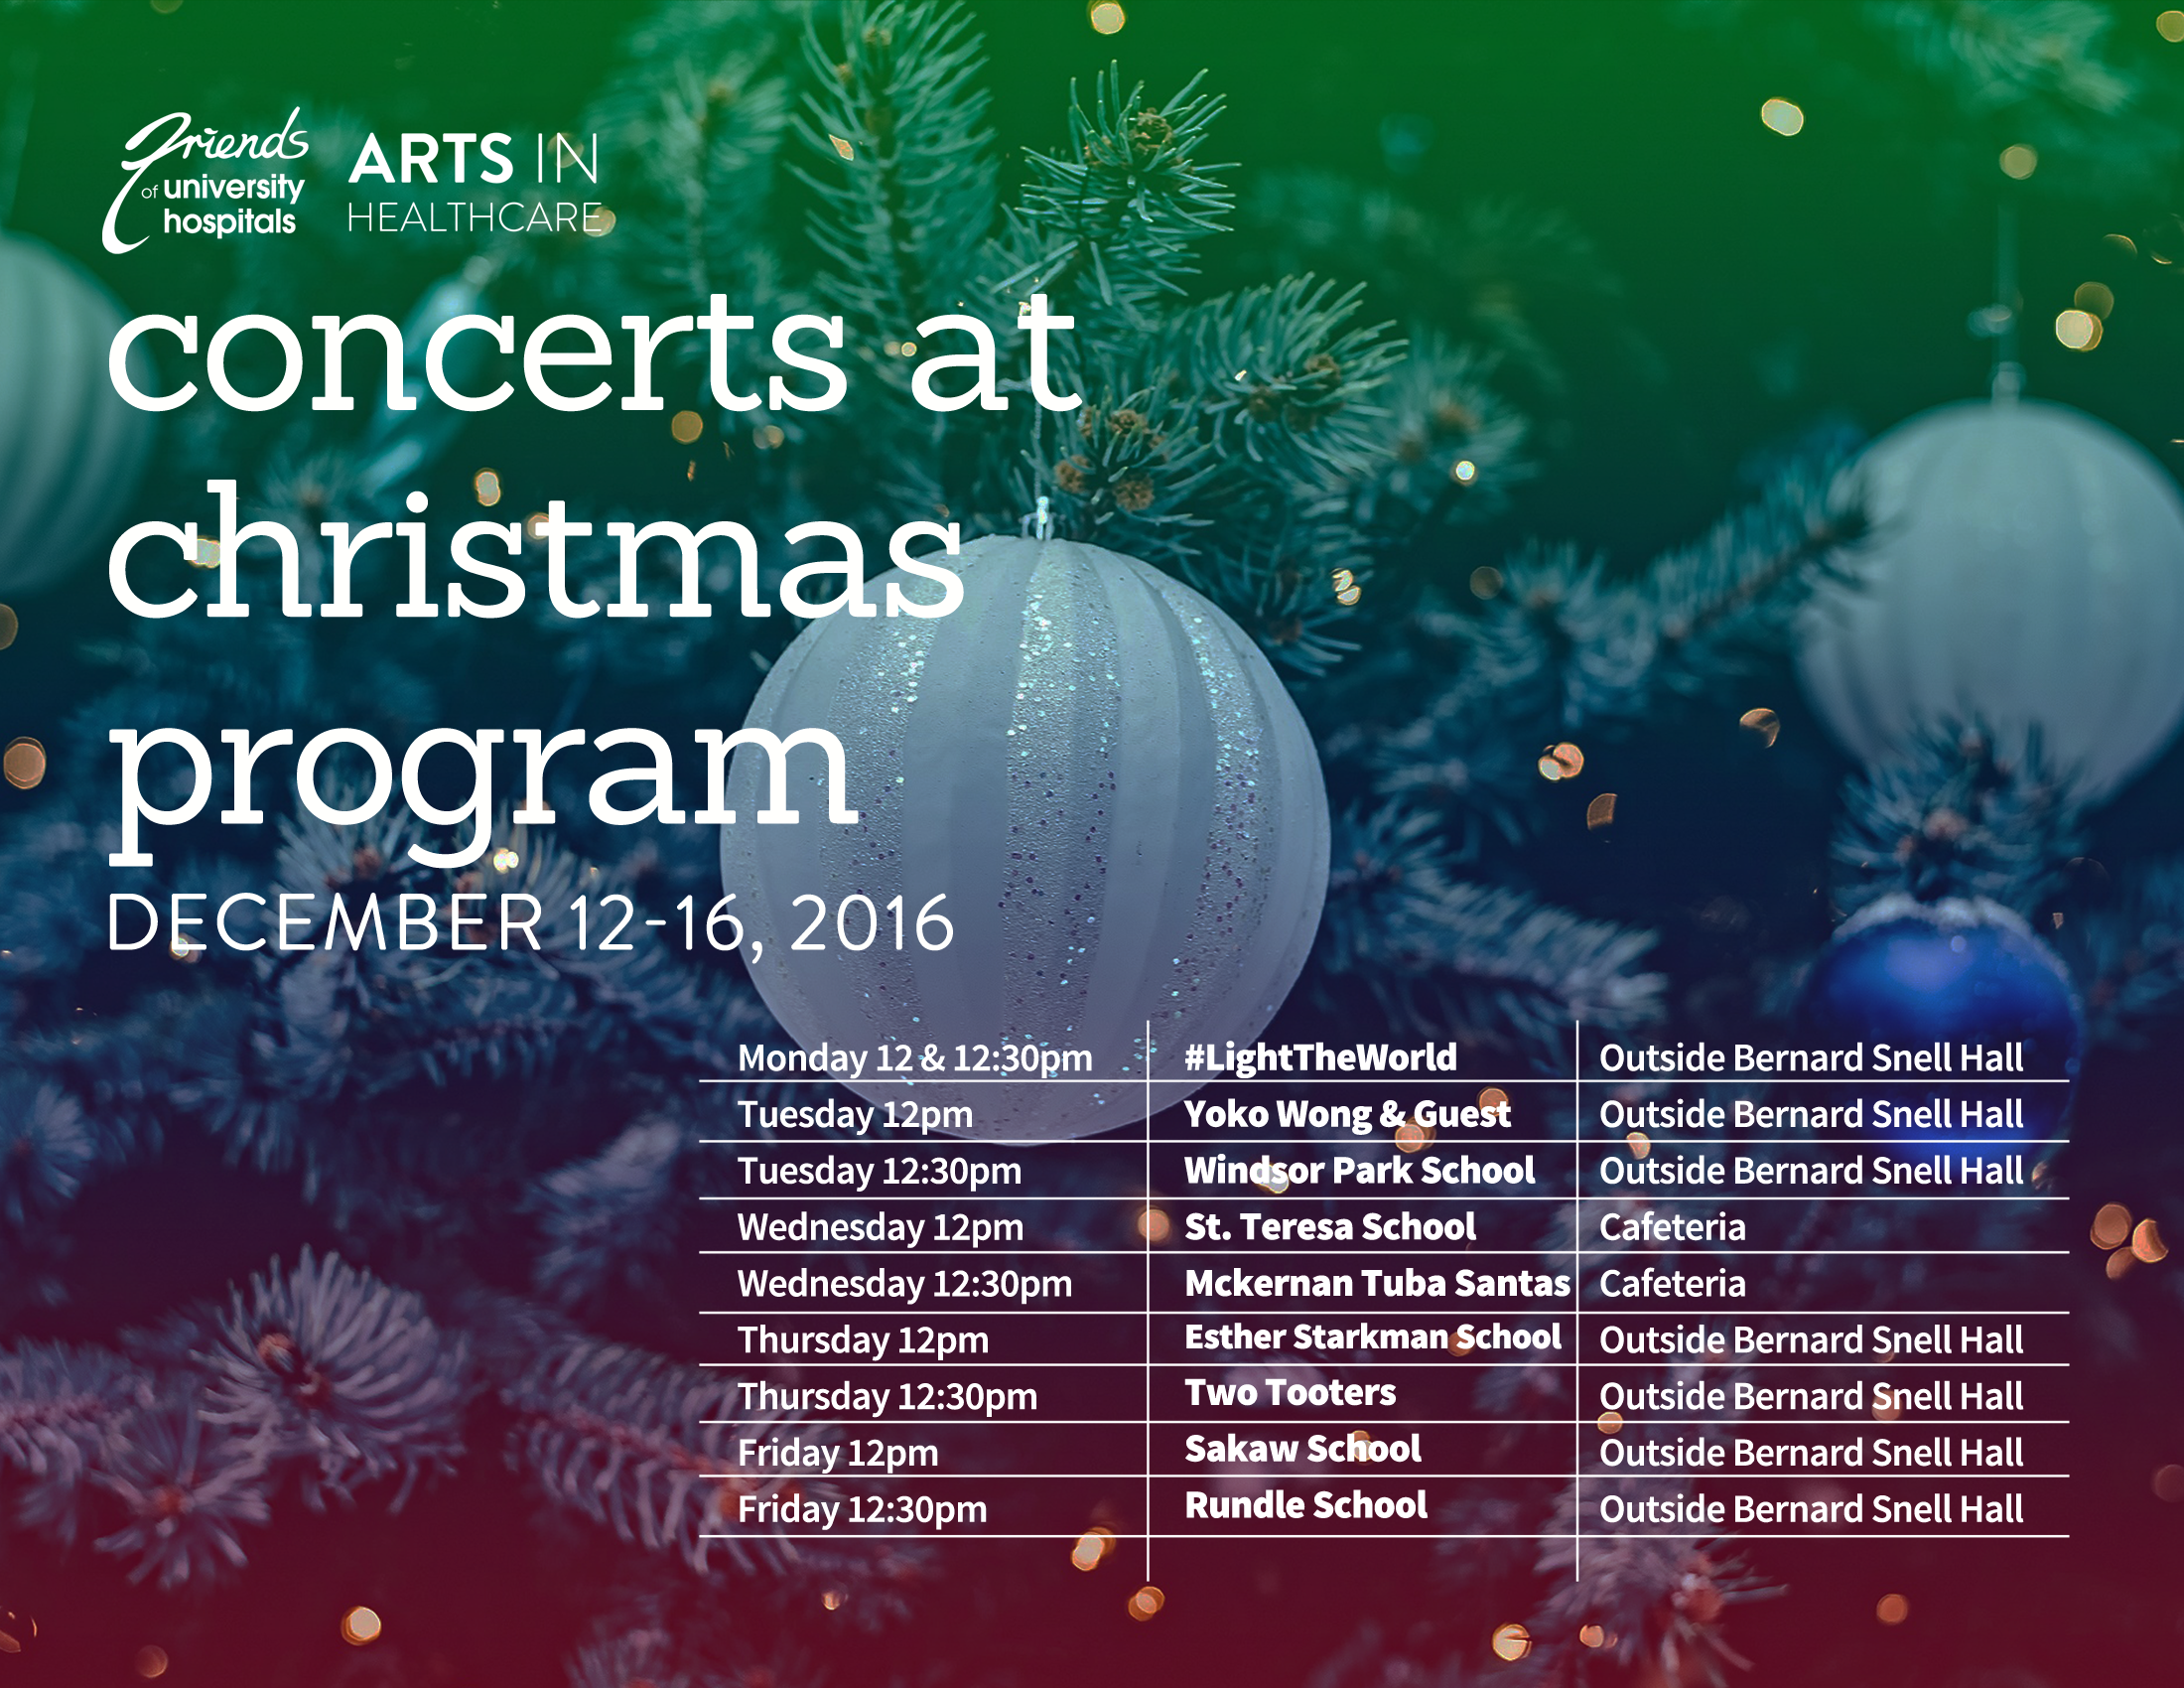 hospital, christmas choirs, Friends of University Hospitals, Arts in Healthcare